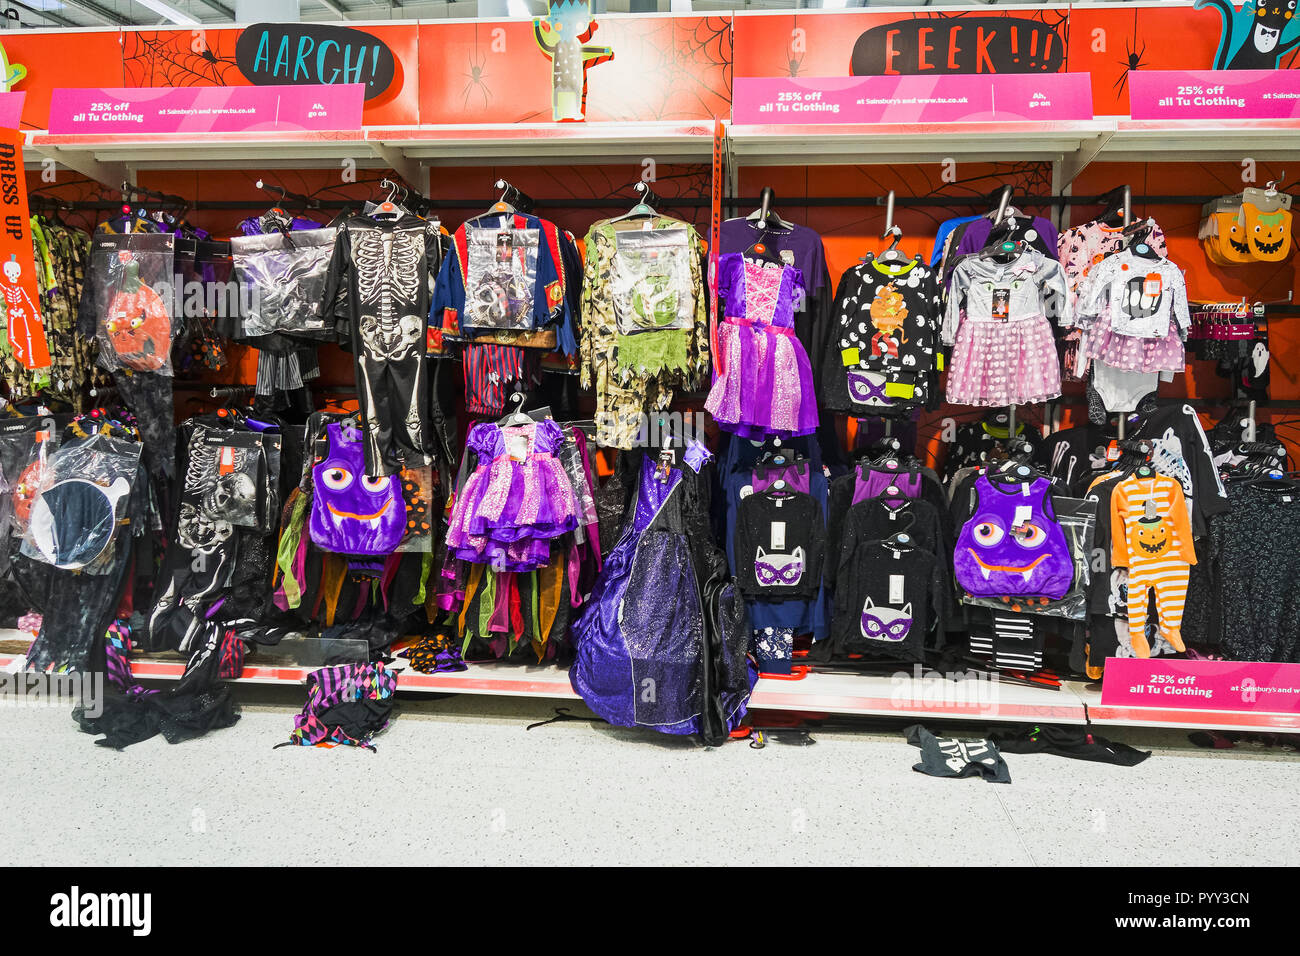 Halloween costumes for sale in UK supermarkets. - Stock Image